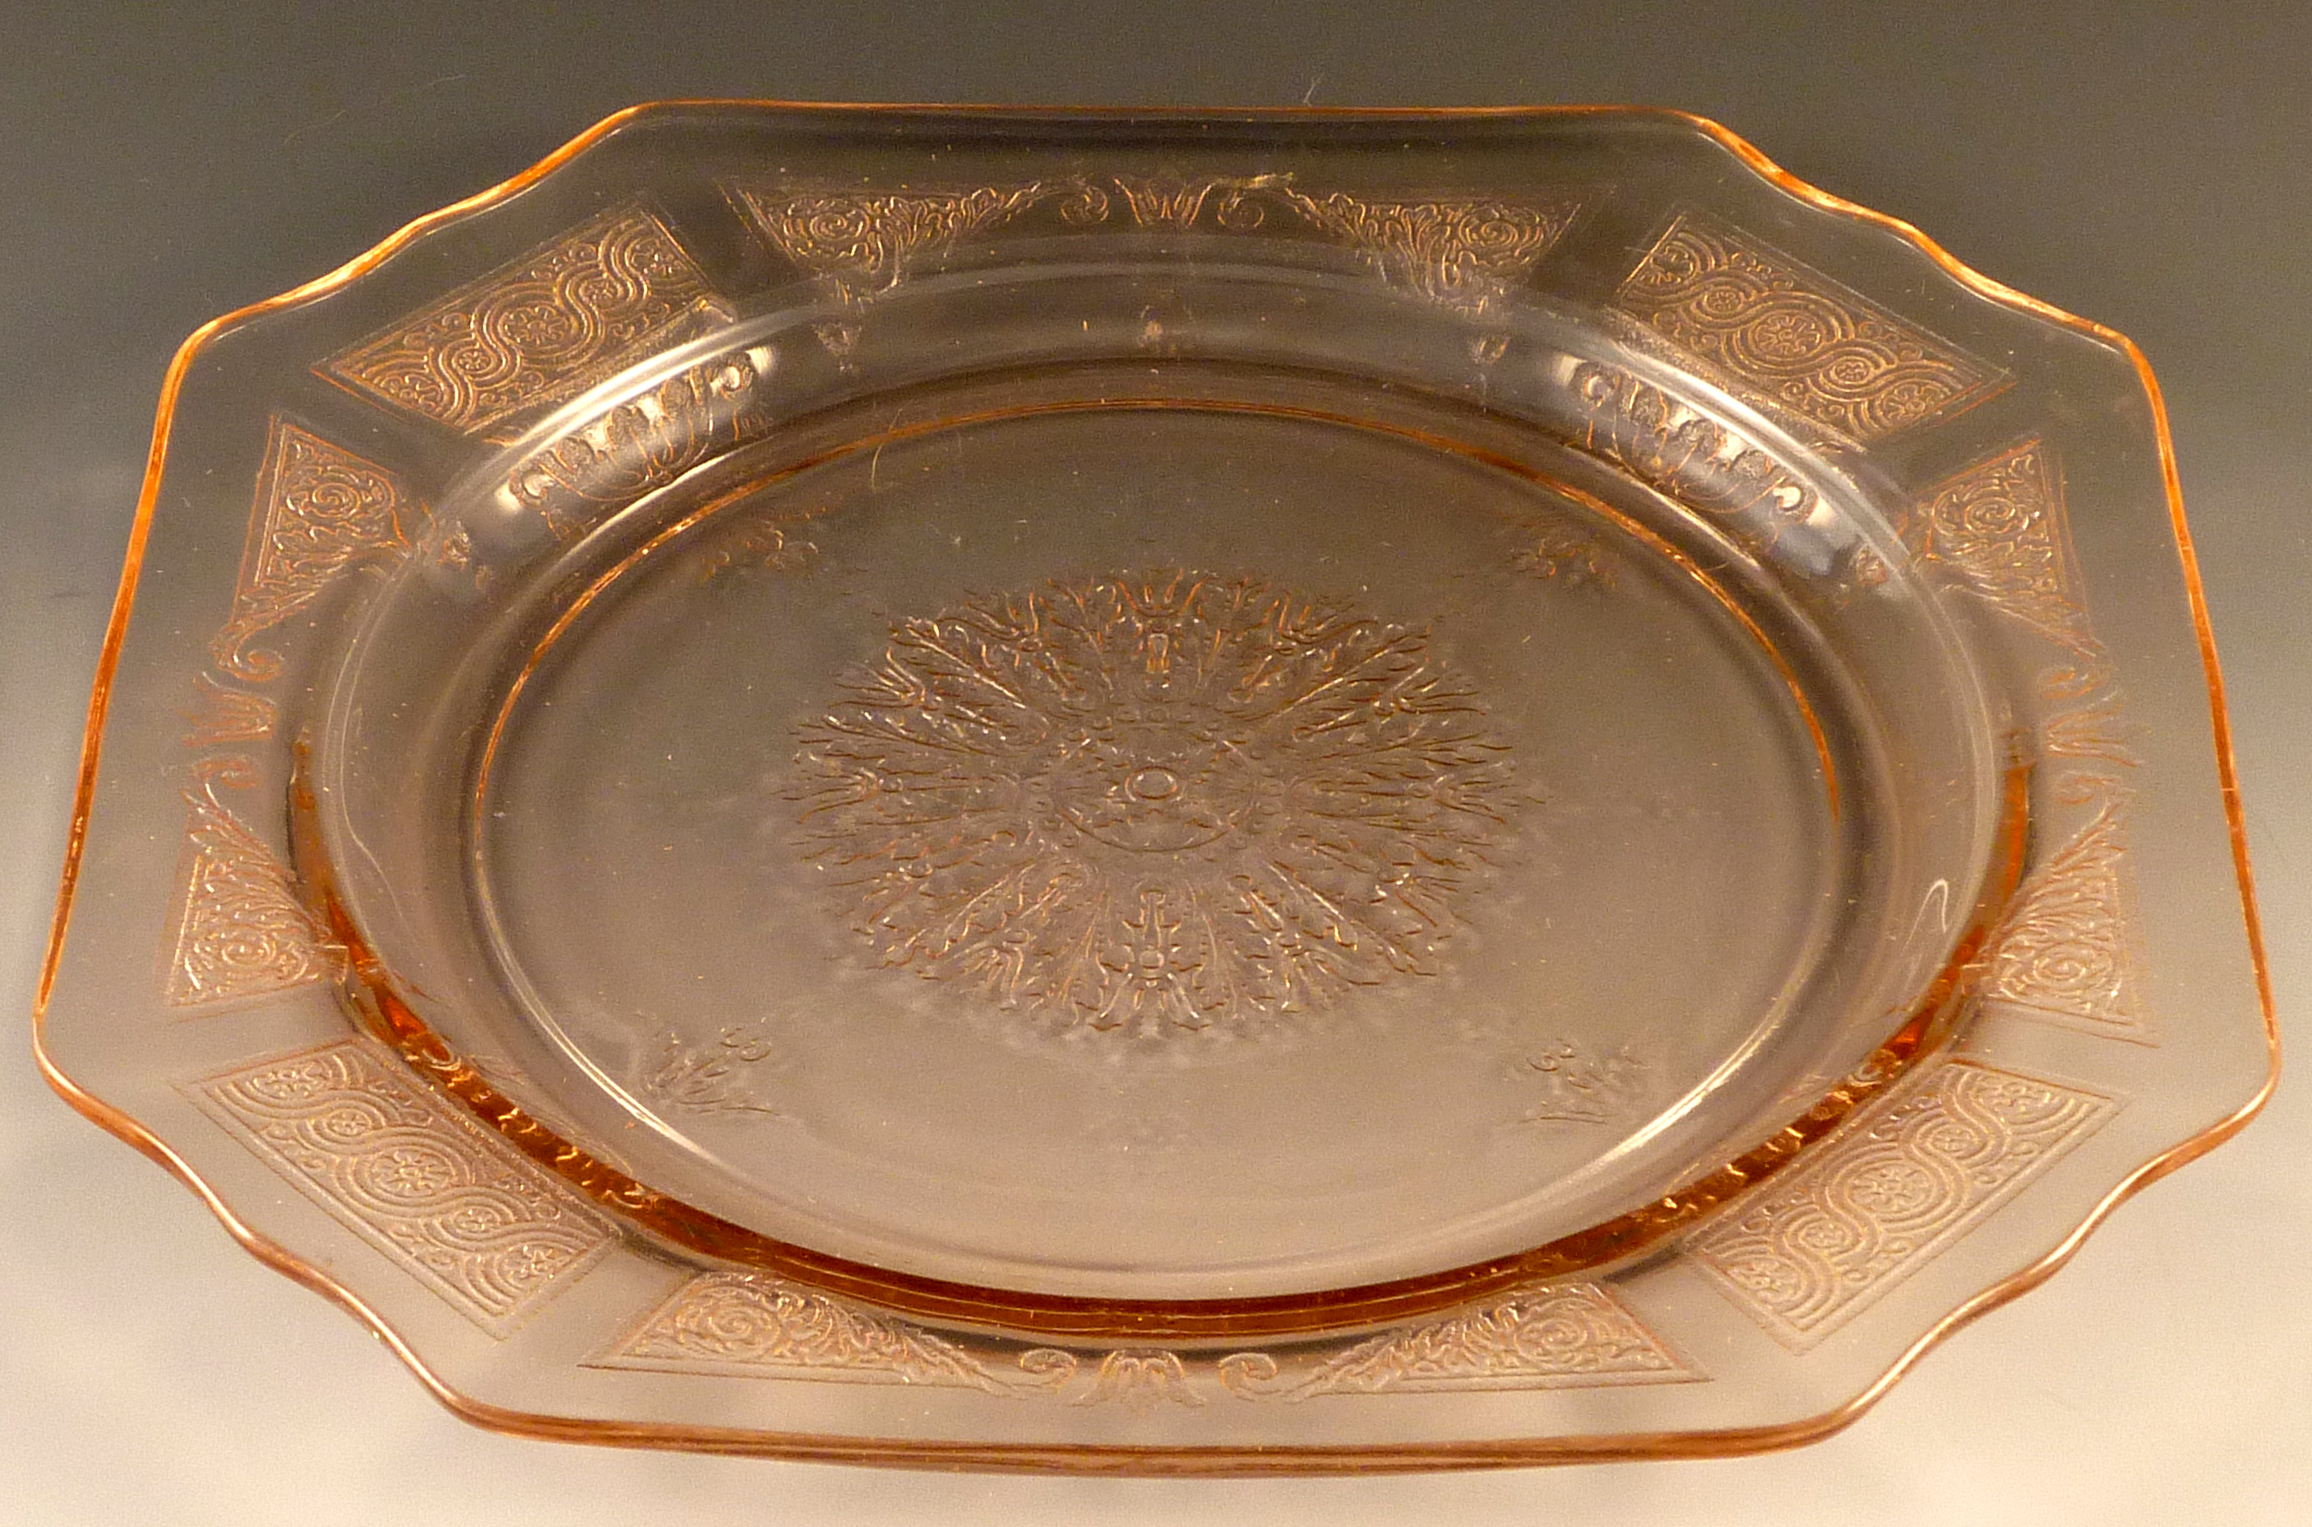 Princess Pink Depression Glass 8 7/8 Inch Dinner Plate Purchased on Craigslist & Three Tips to Shop Craigslist for Depression Glass